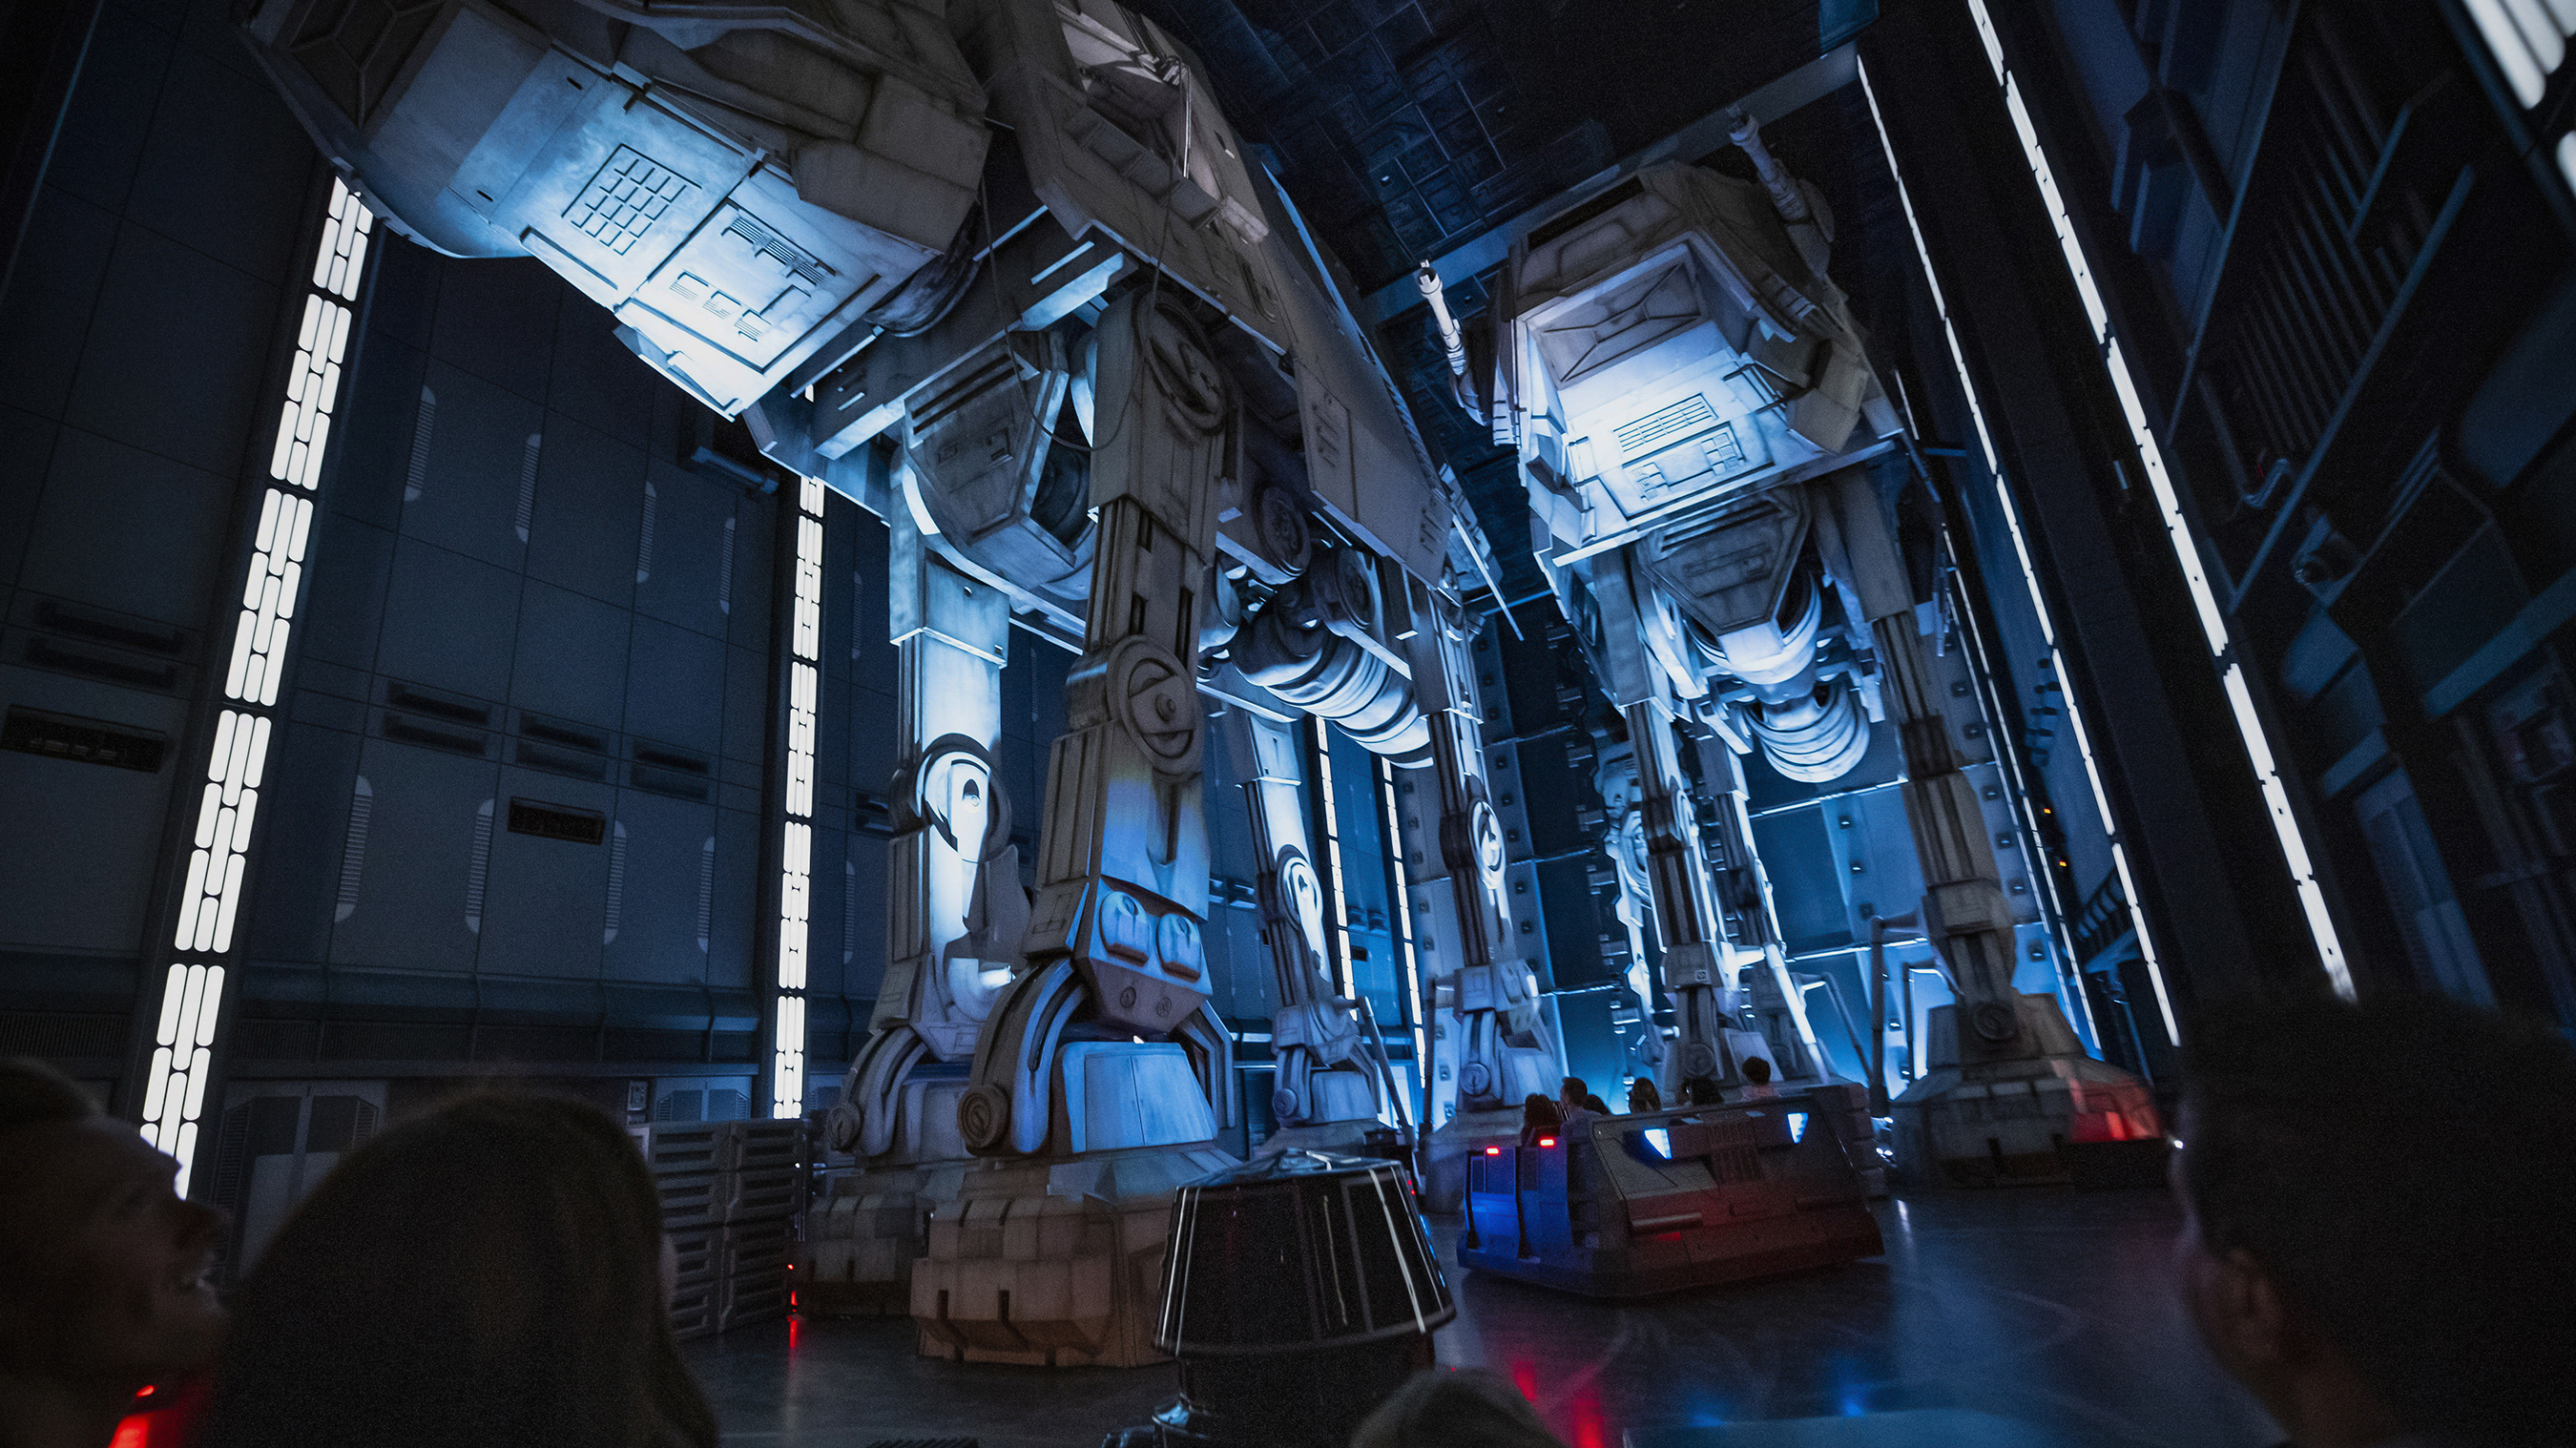 Star Wars: Rise of the Resistance will launch Jan. 17 as part of Star Wars: Galaxy's Edge at Disneyland Park.